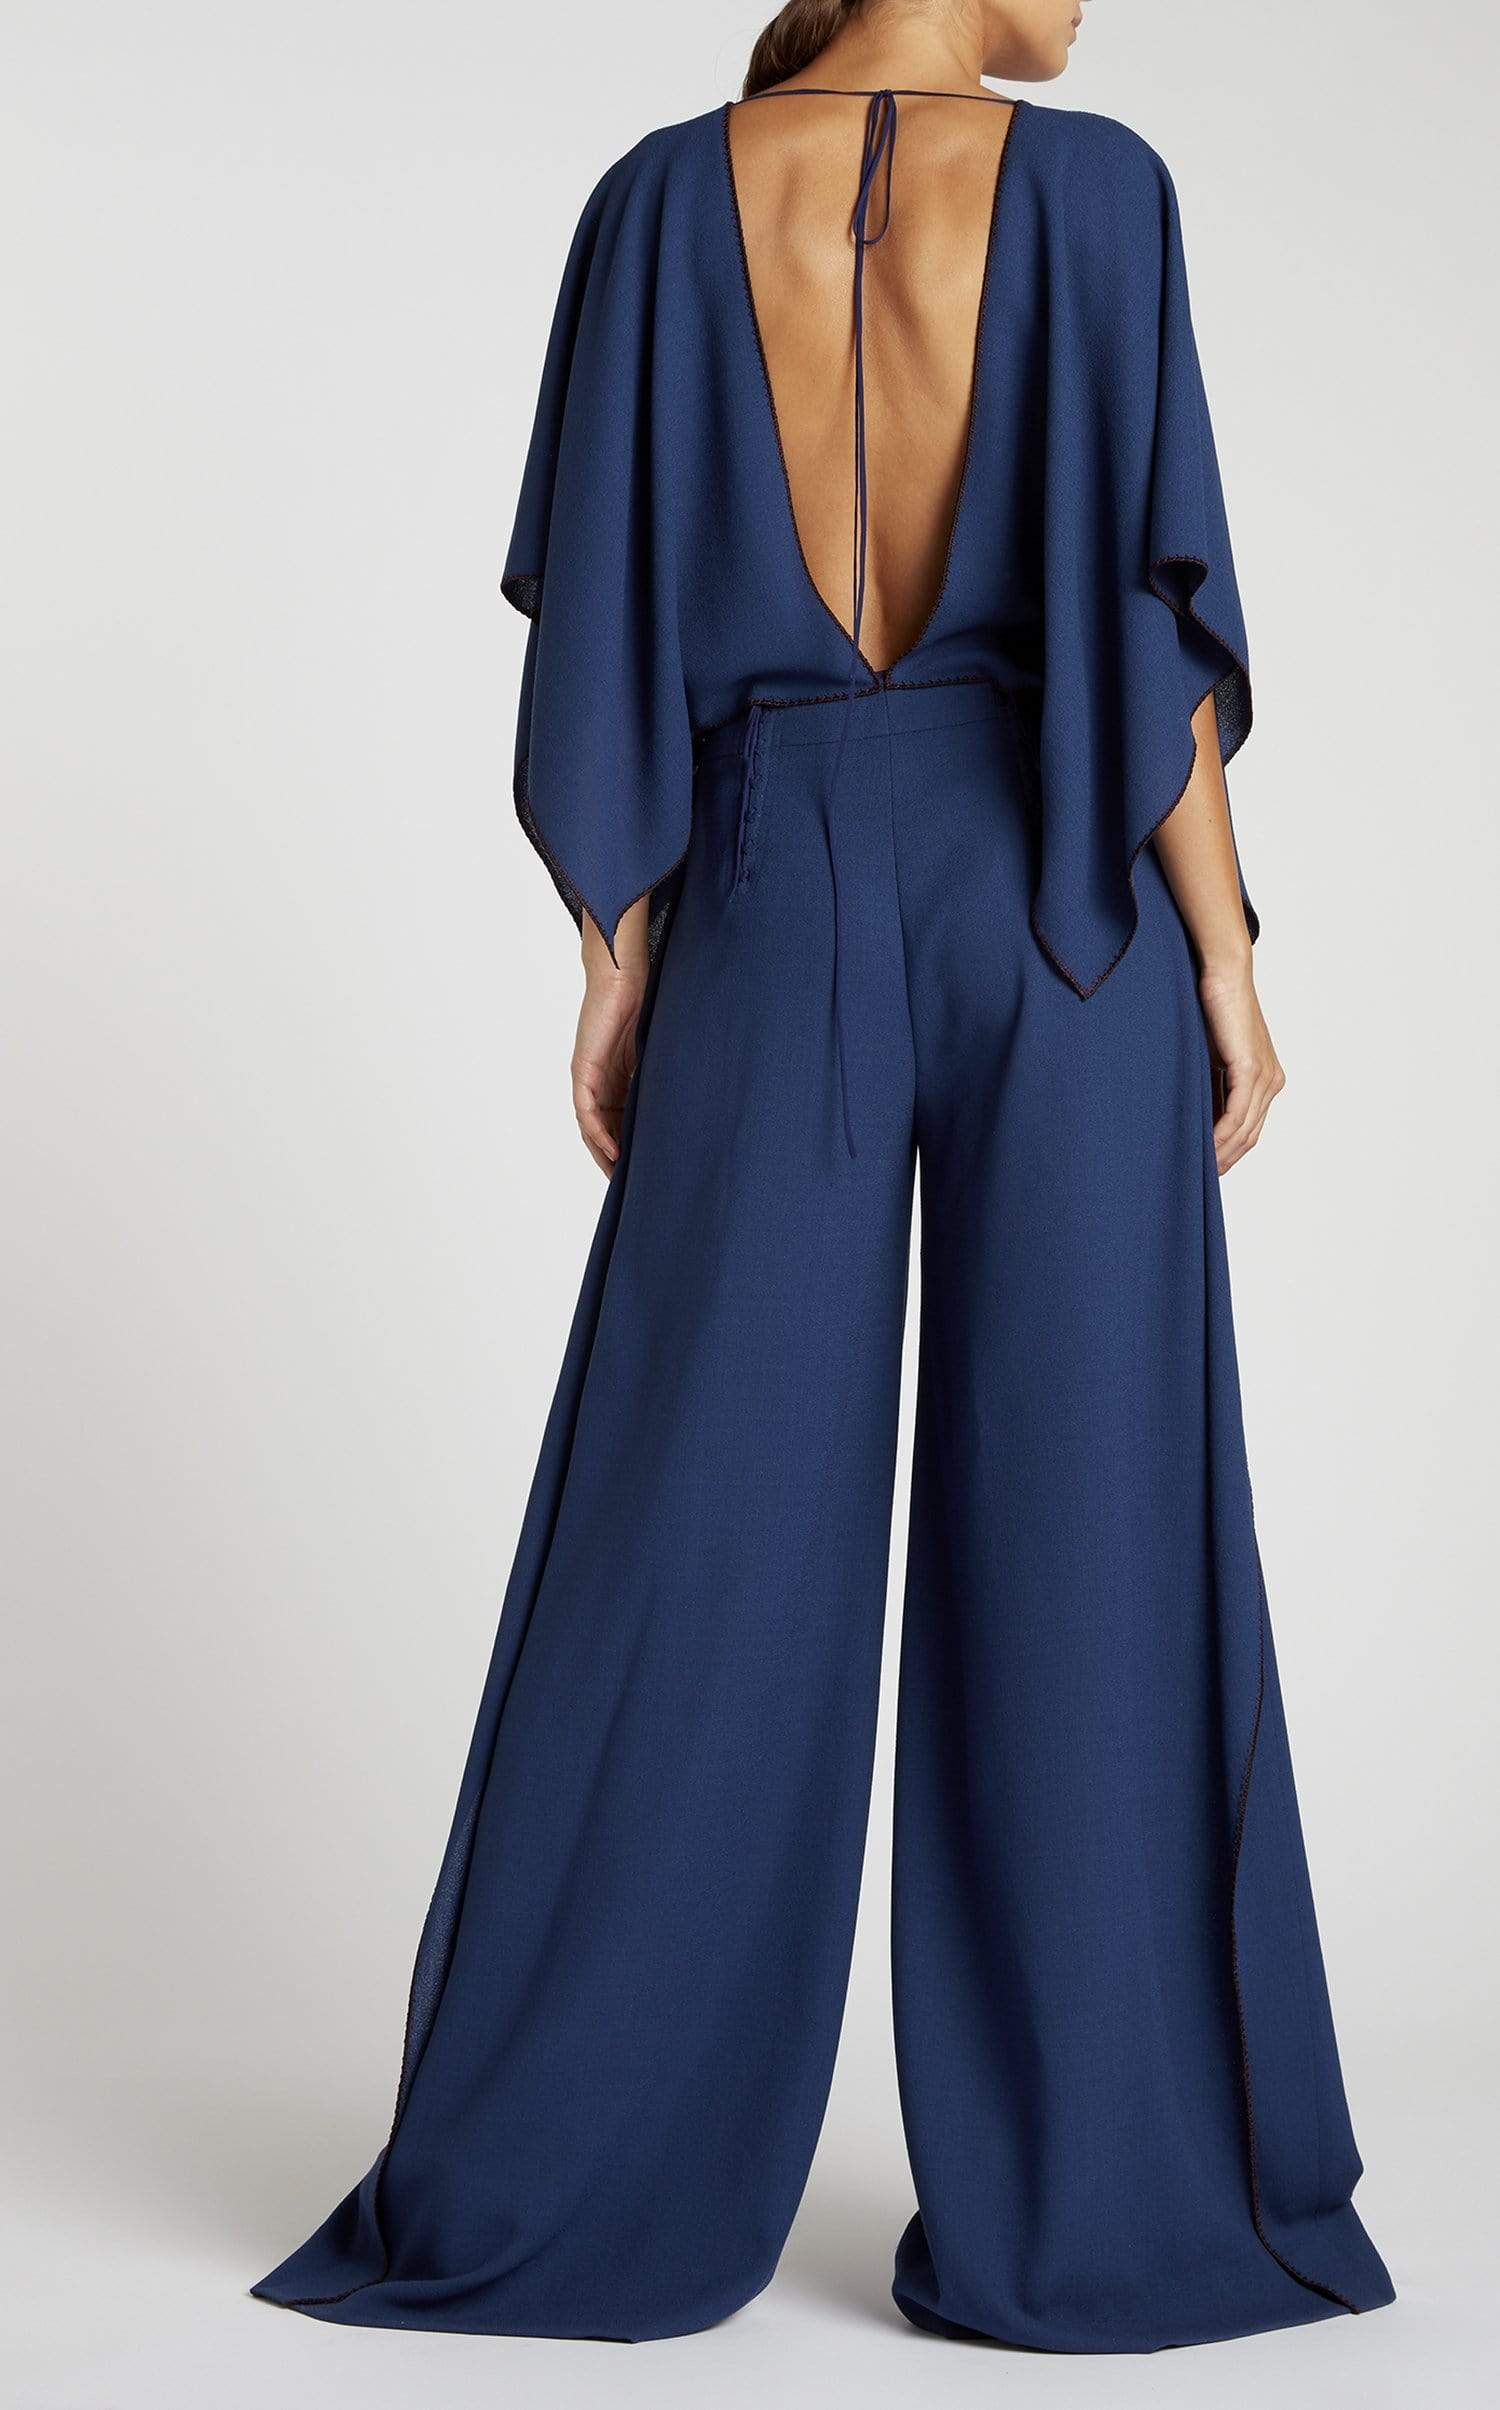 Auclair Jumpsuit In Navy from Roland Mouret